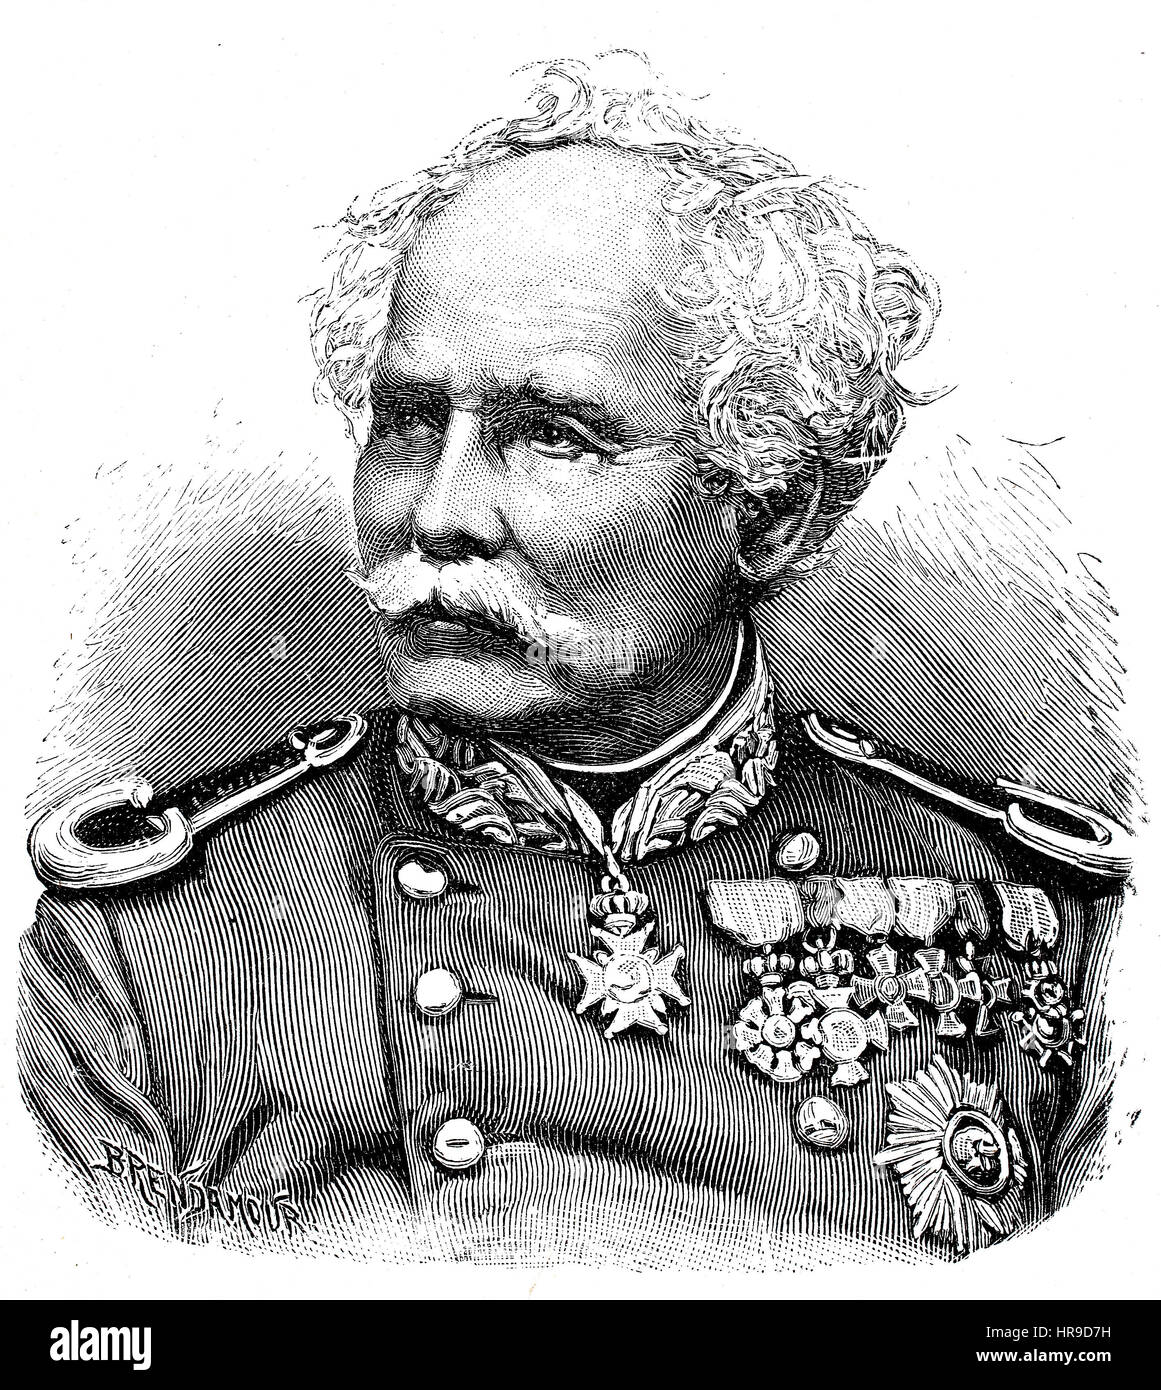 Julius Hartwig Friedrich von Hartmann, 1817 - 1878, Was a Prussian general of the cavalry, Situation from the time - Stock Image